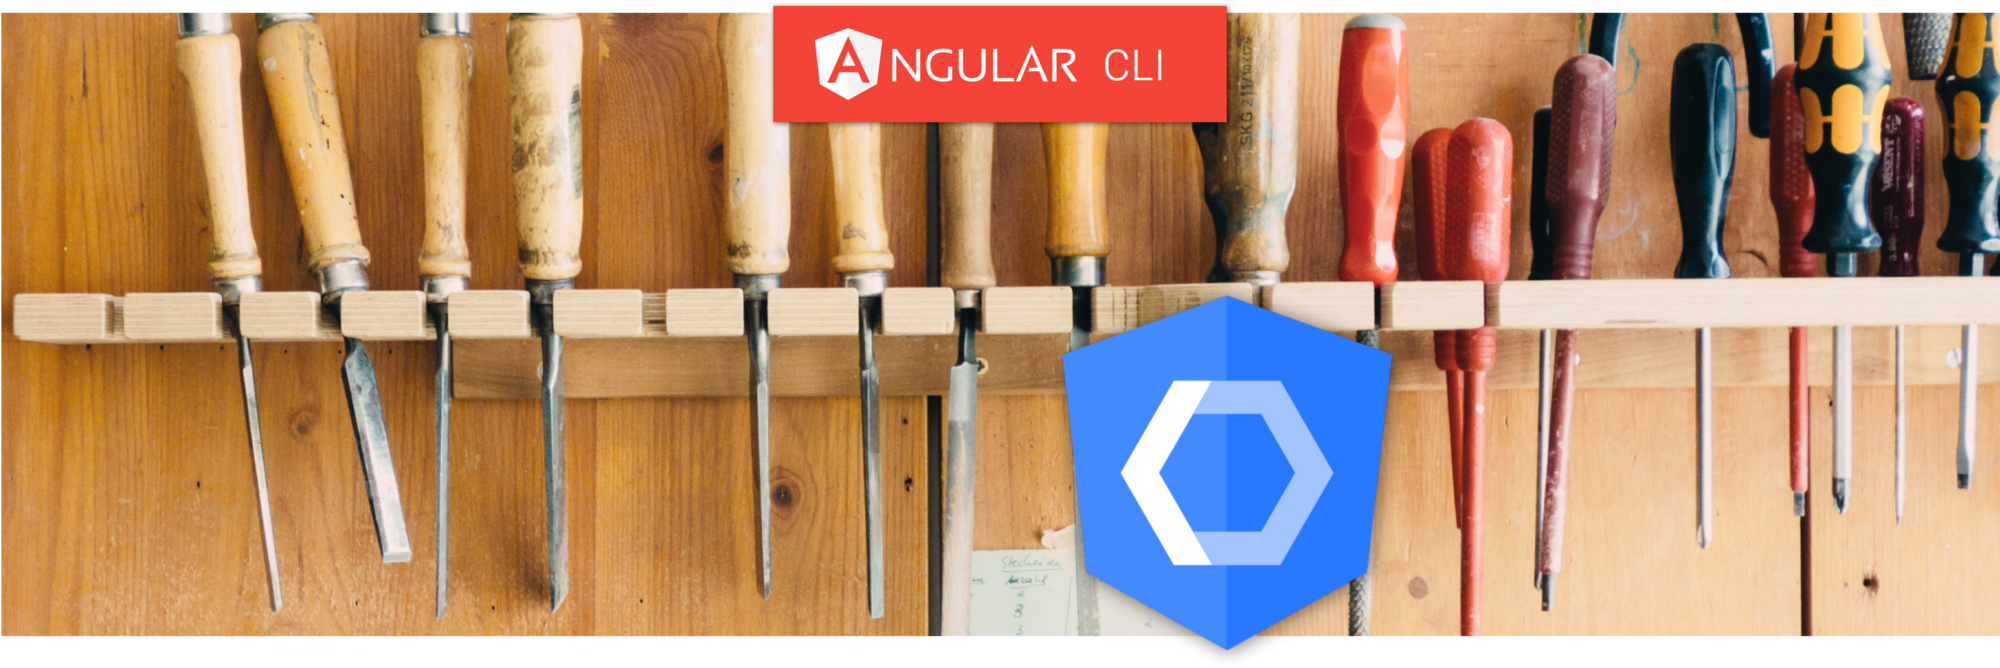 Building Custom Elements Web Components With Angular 6 Fuse Box 1920 5 Step Guide Using Cli And